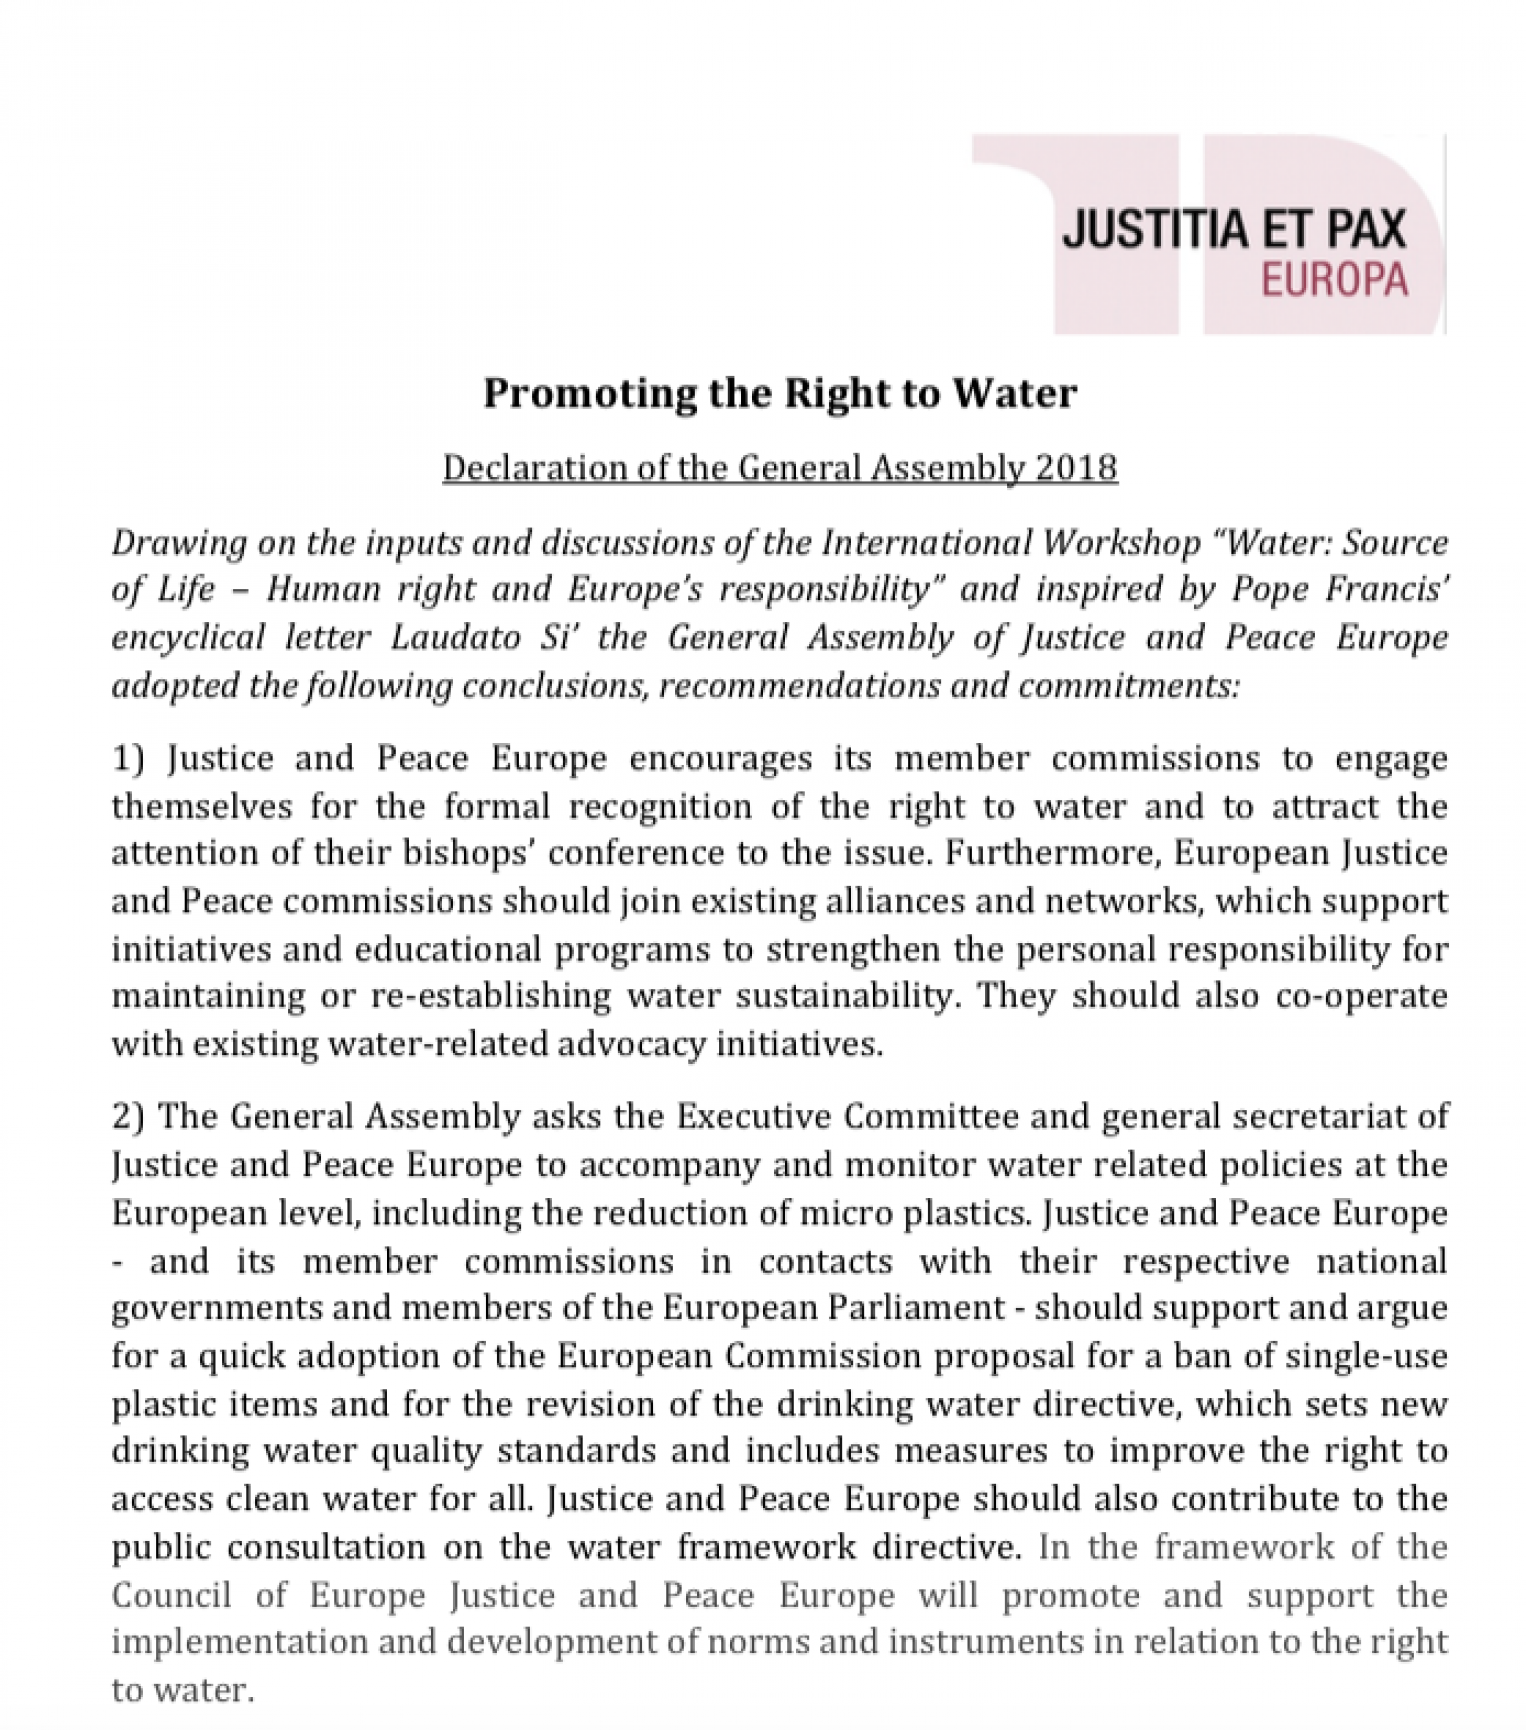 Promoting the Right to Water